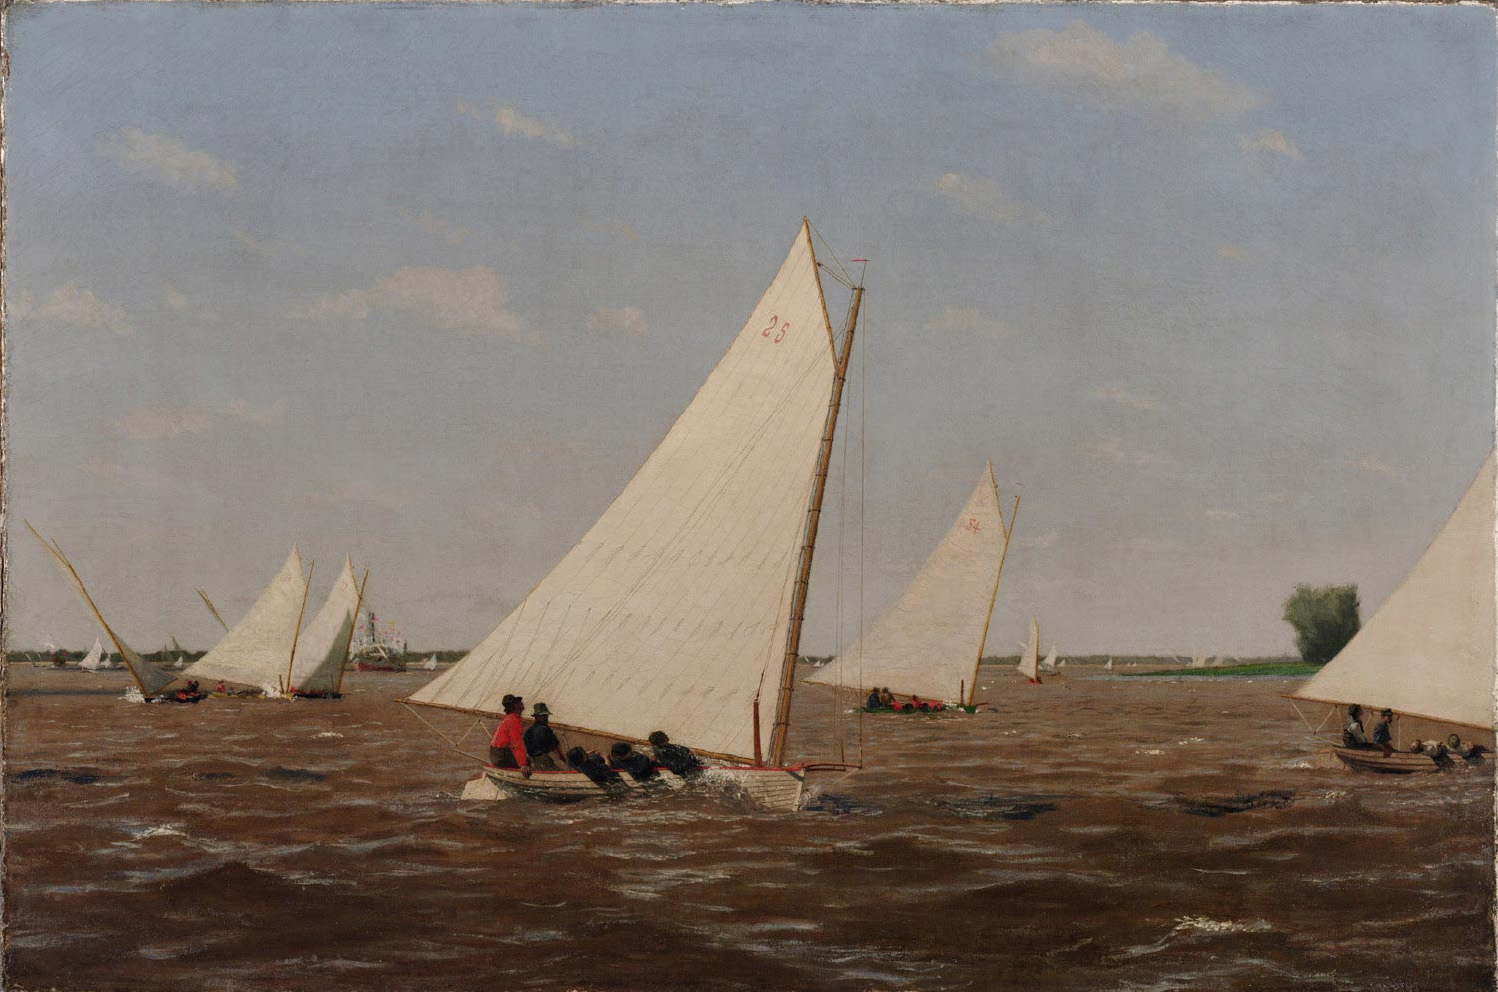 Sail Boats Oil Painting By Gulindo